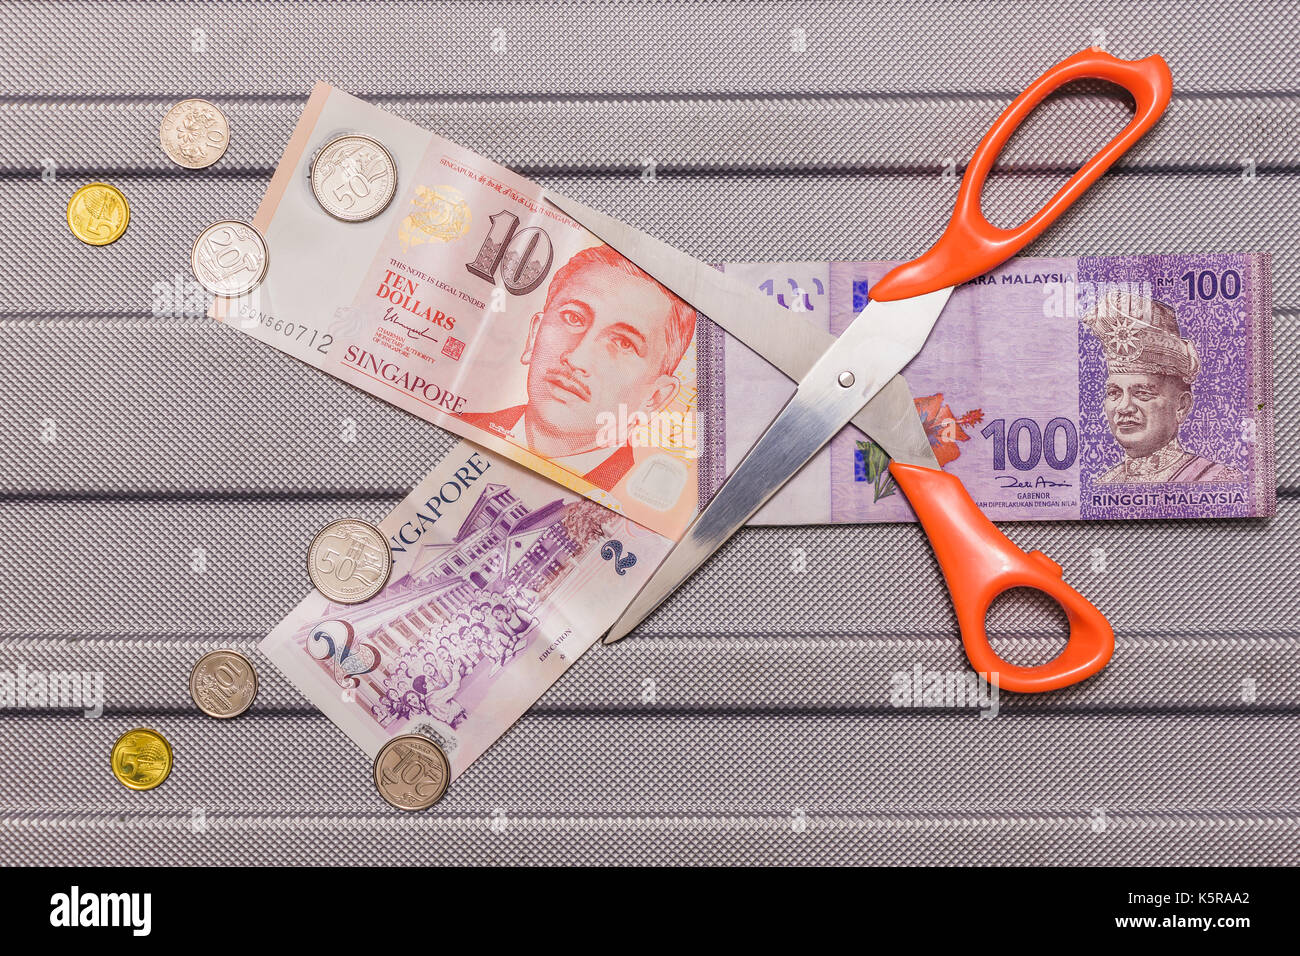 Singapore dollar and coins on top of malaysian ringgit currency on singapore dollar and coins on top of malaysian ringgit currency on pattern background concept currency exchanges money value cutting down malaysian buycottarizona Image collections